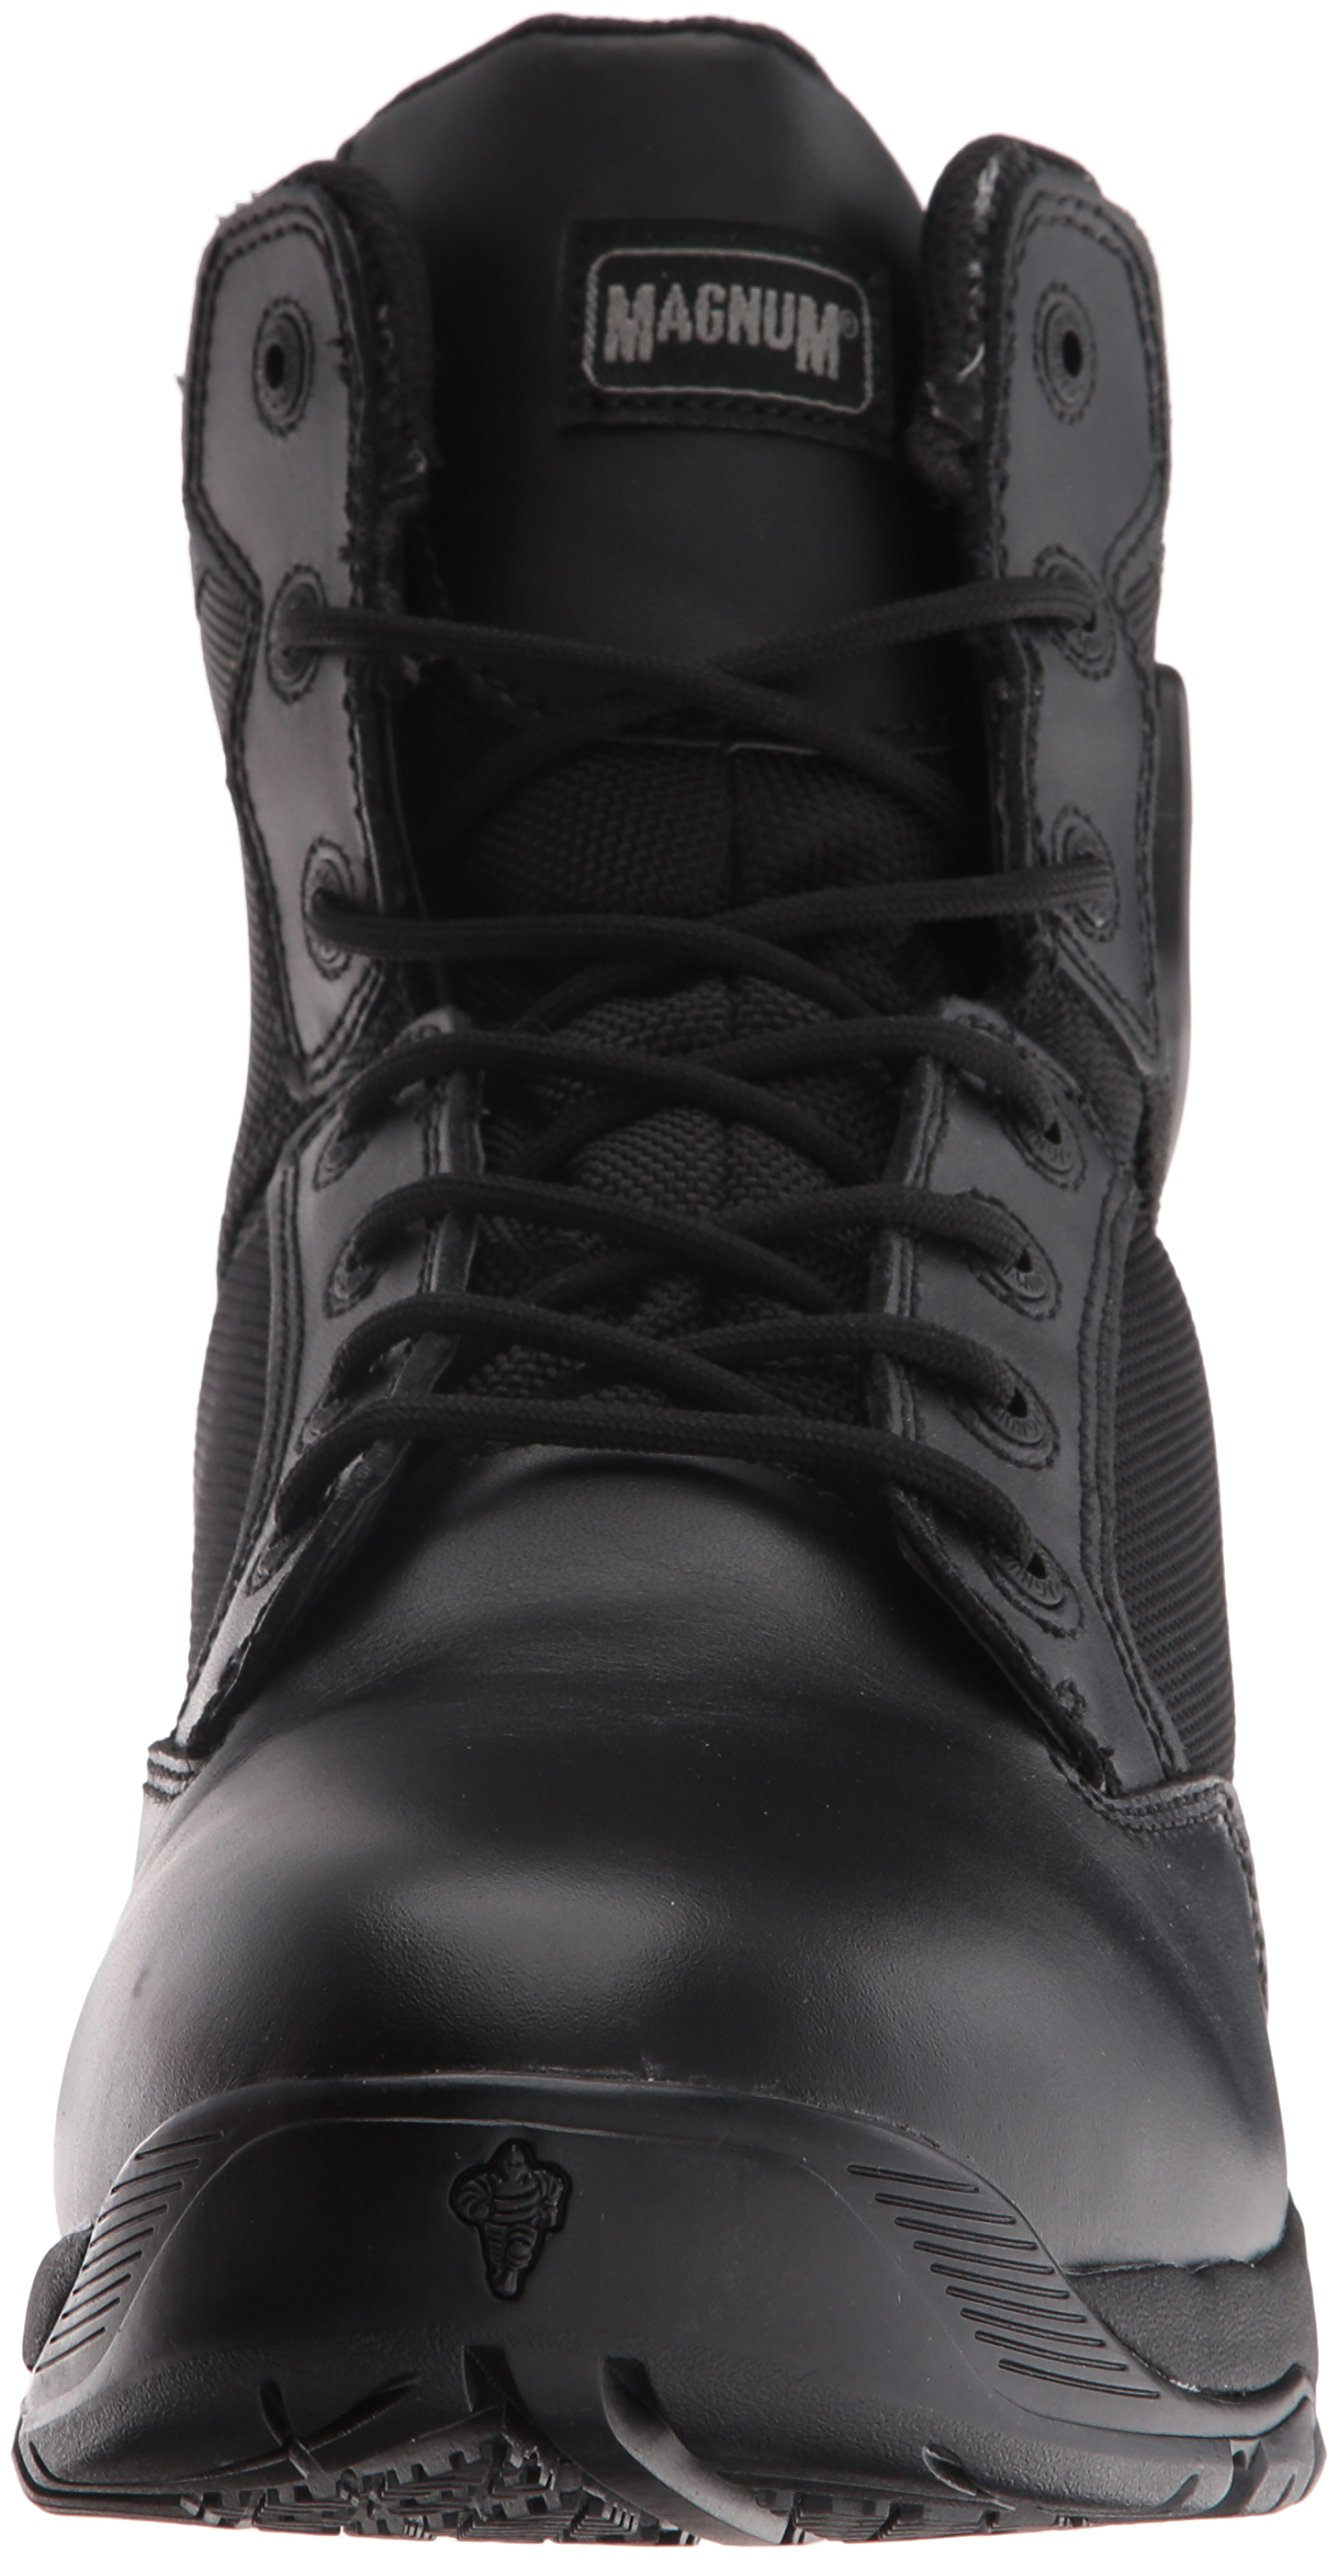 Magnum Men's Strike Force 6'' Waterproof Military & Tactical Boot, Black 14 W US by Magnum (Image #4)